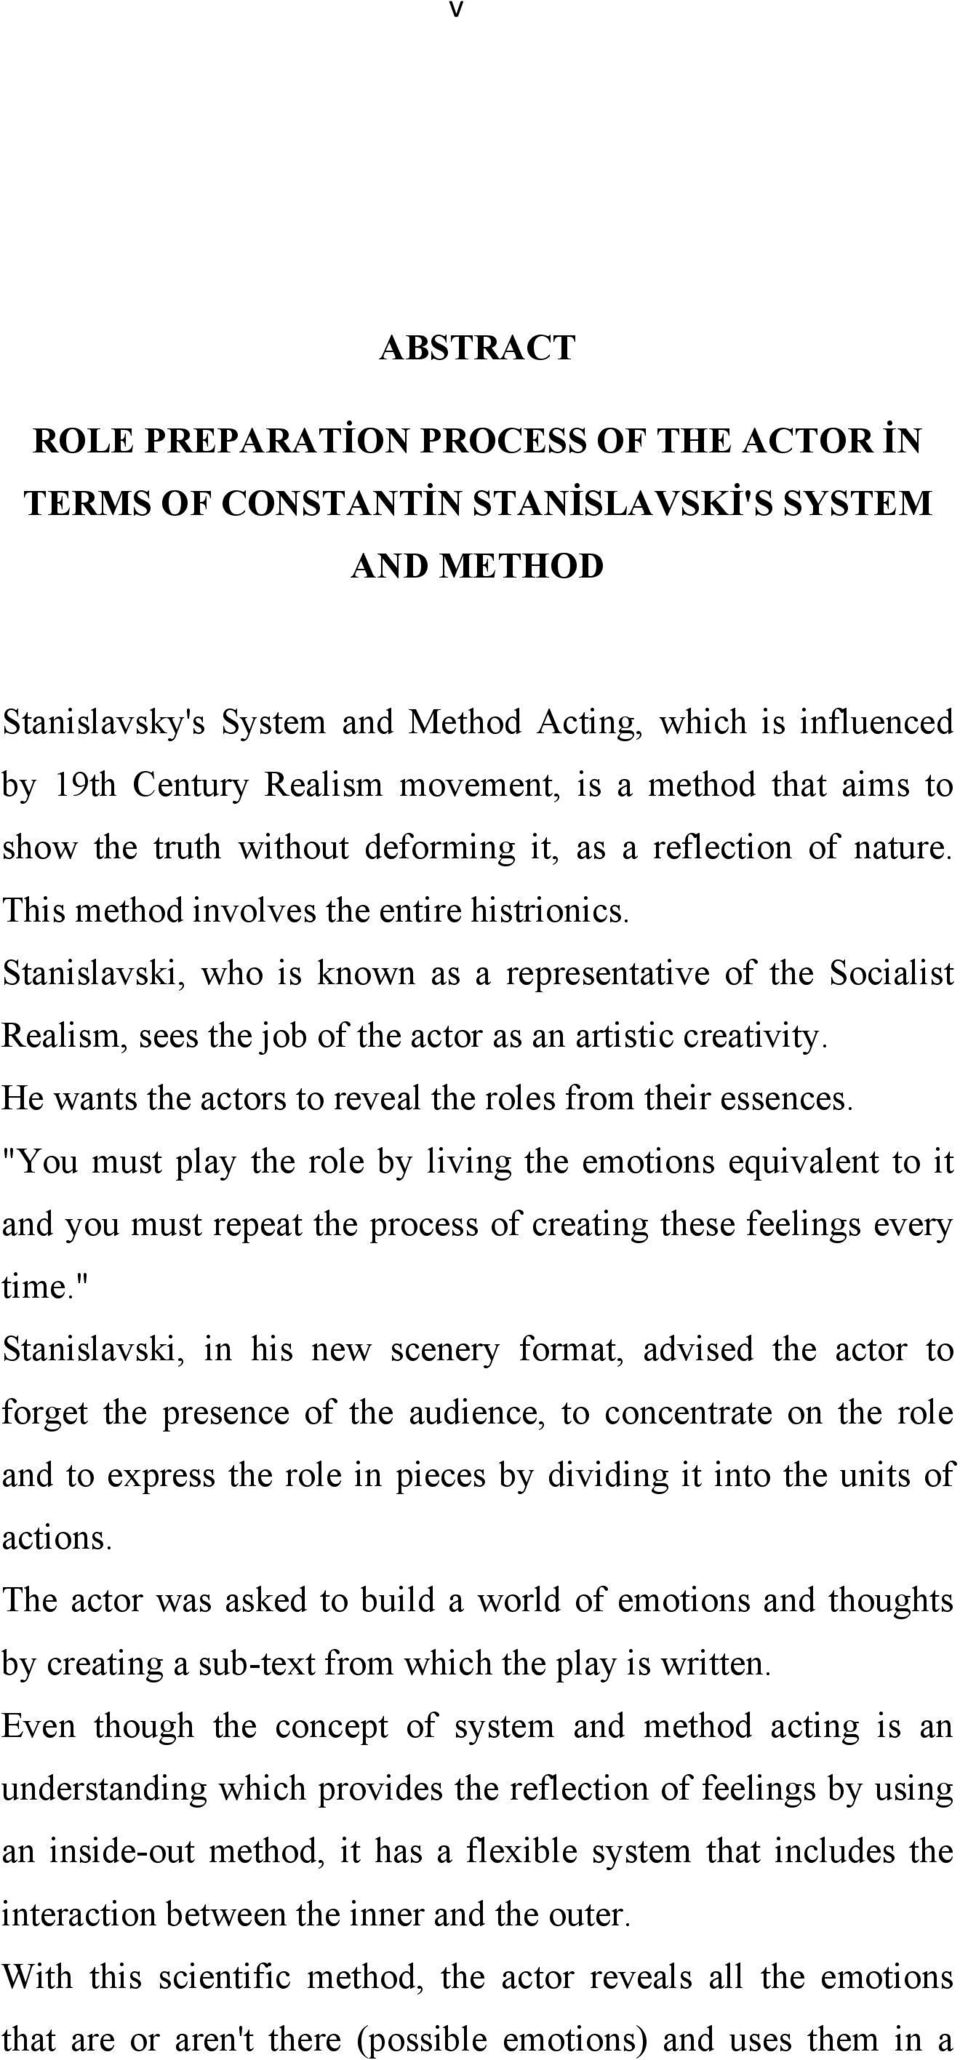 Stanislavski, who is known as a representative of the Socialist Realism, sees the job of the actor as an artistic creativity. He wants the actors to reveal the roles from their essences.